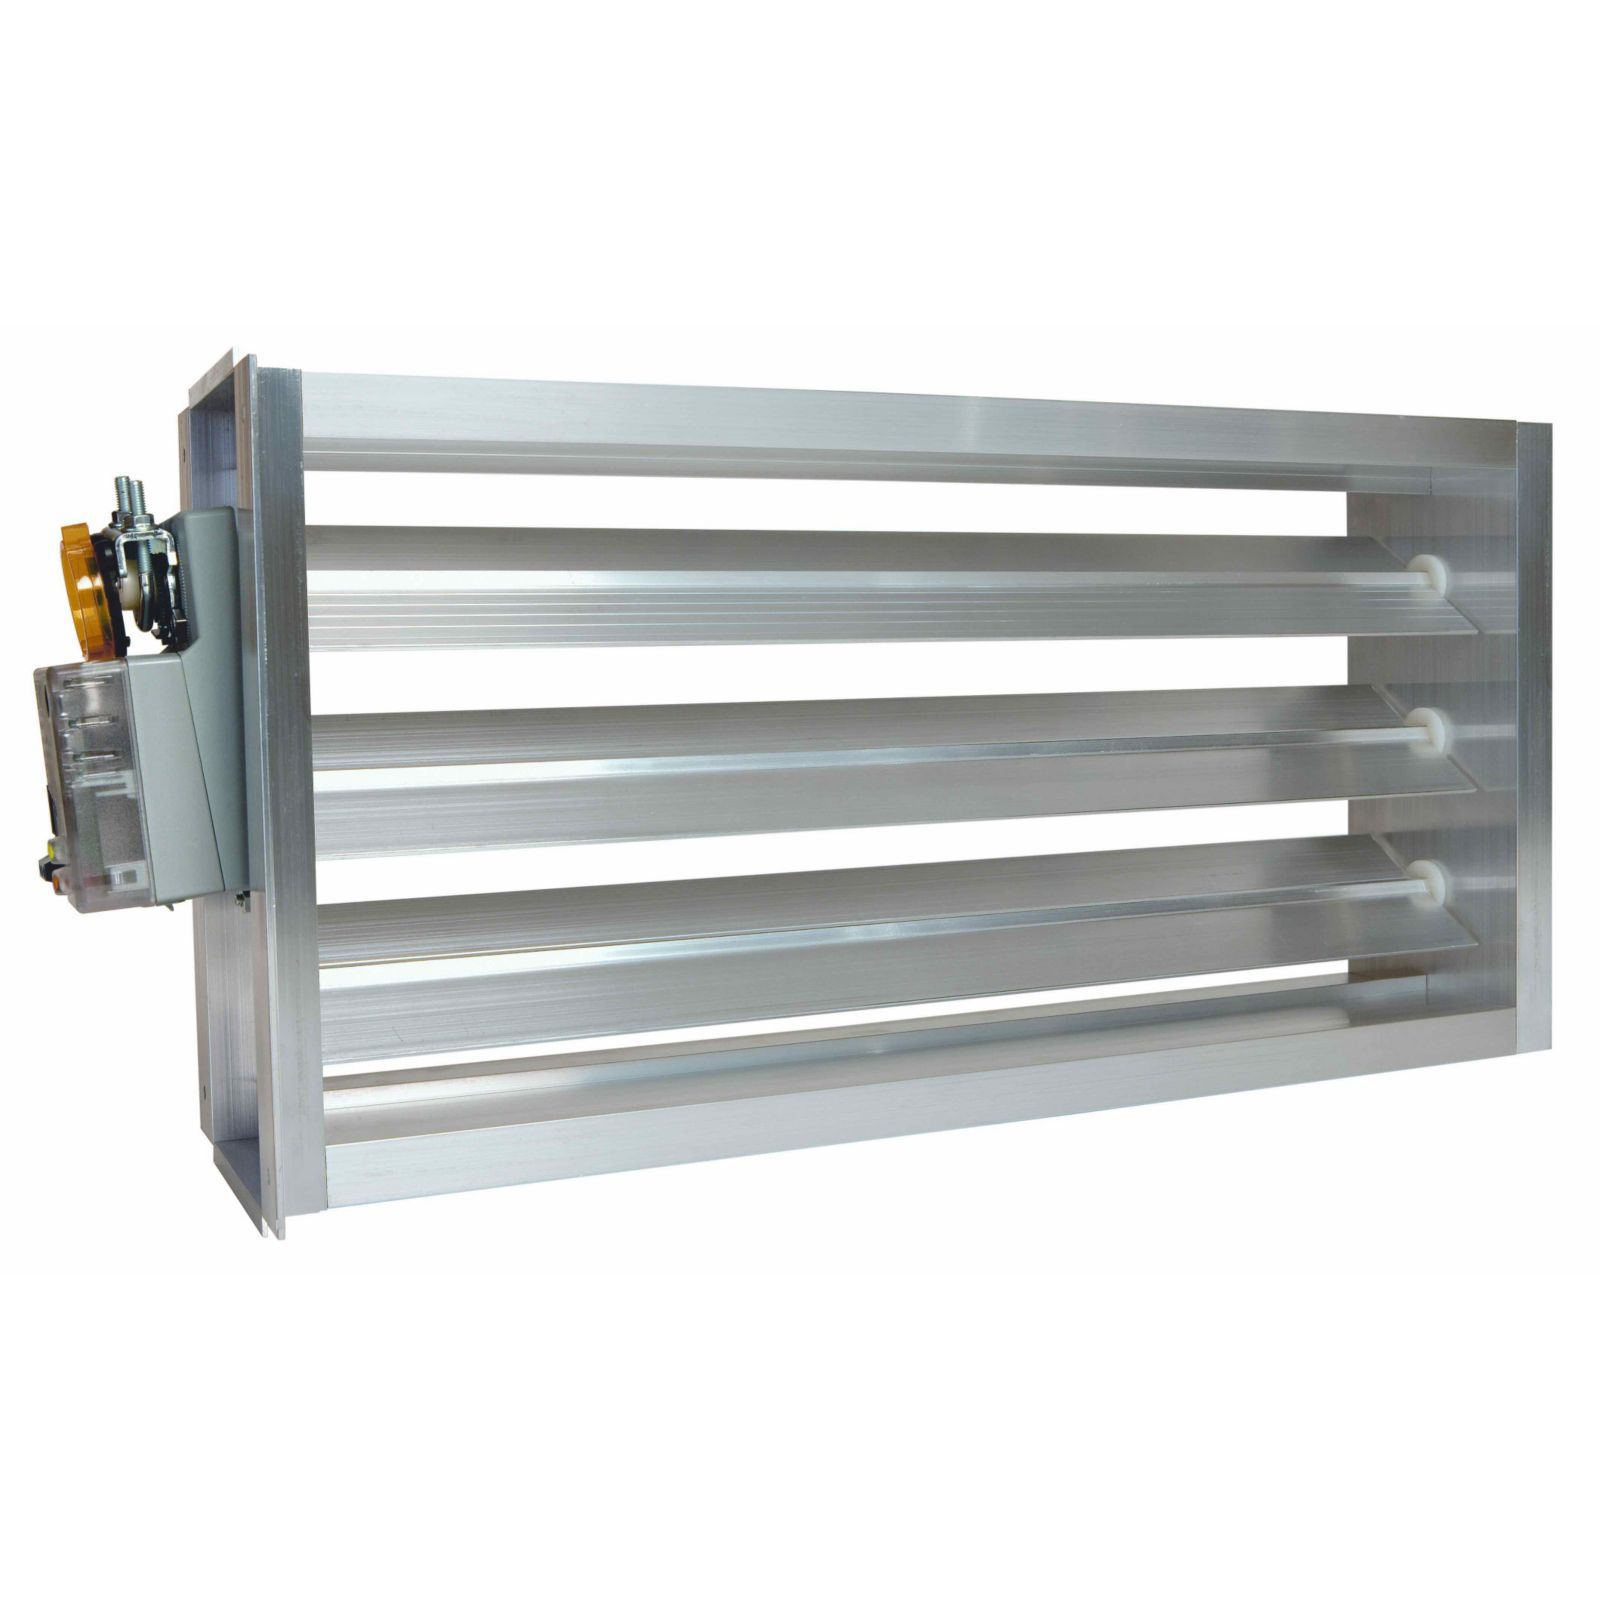 "EWC 10X20 ND - Motorized Ultra-Zone Damper, 10""X 20"""